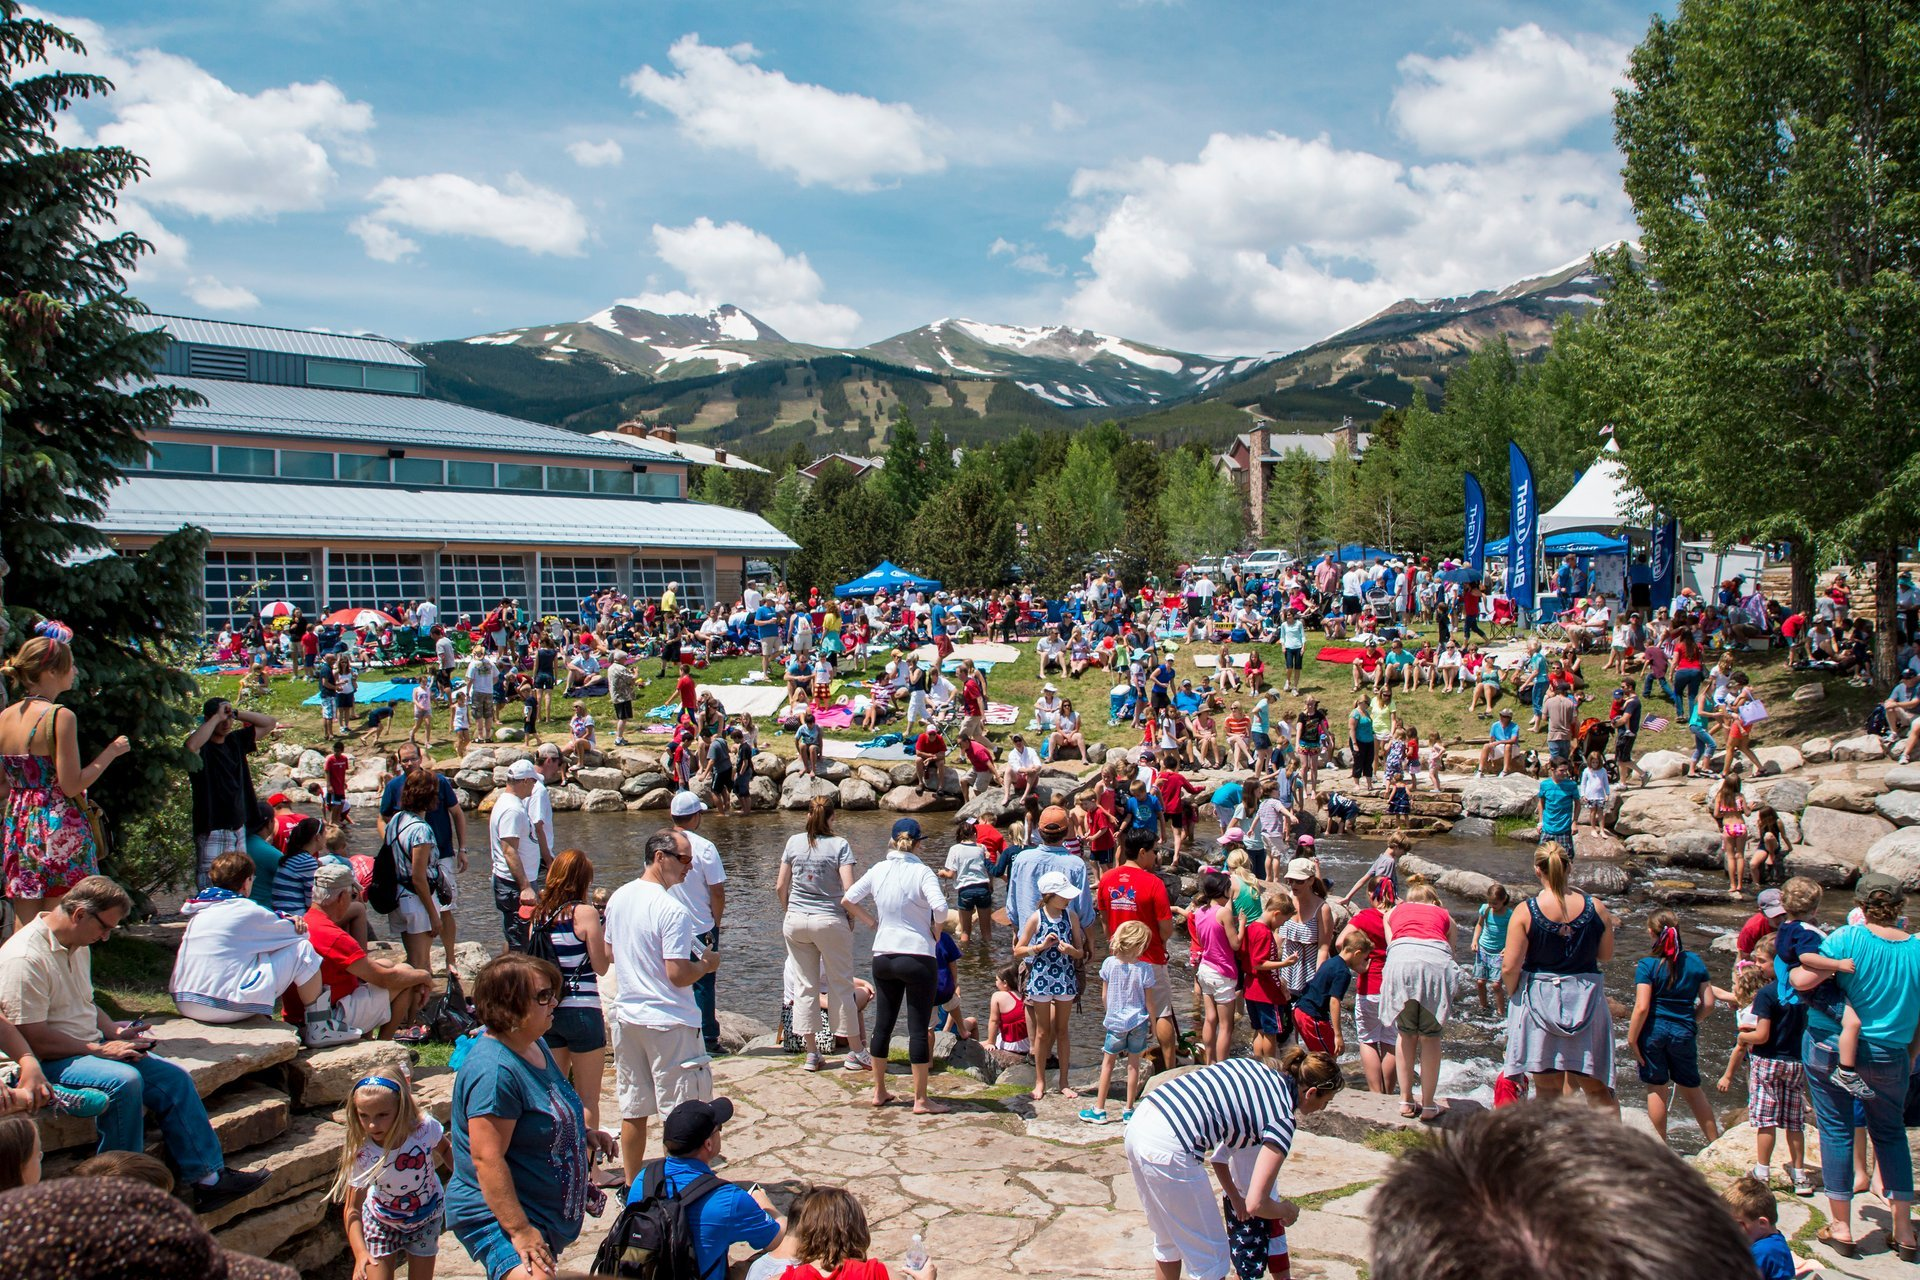 People congregated along the Blue River in the heart of Downtown Breckenridge 2020